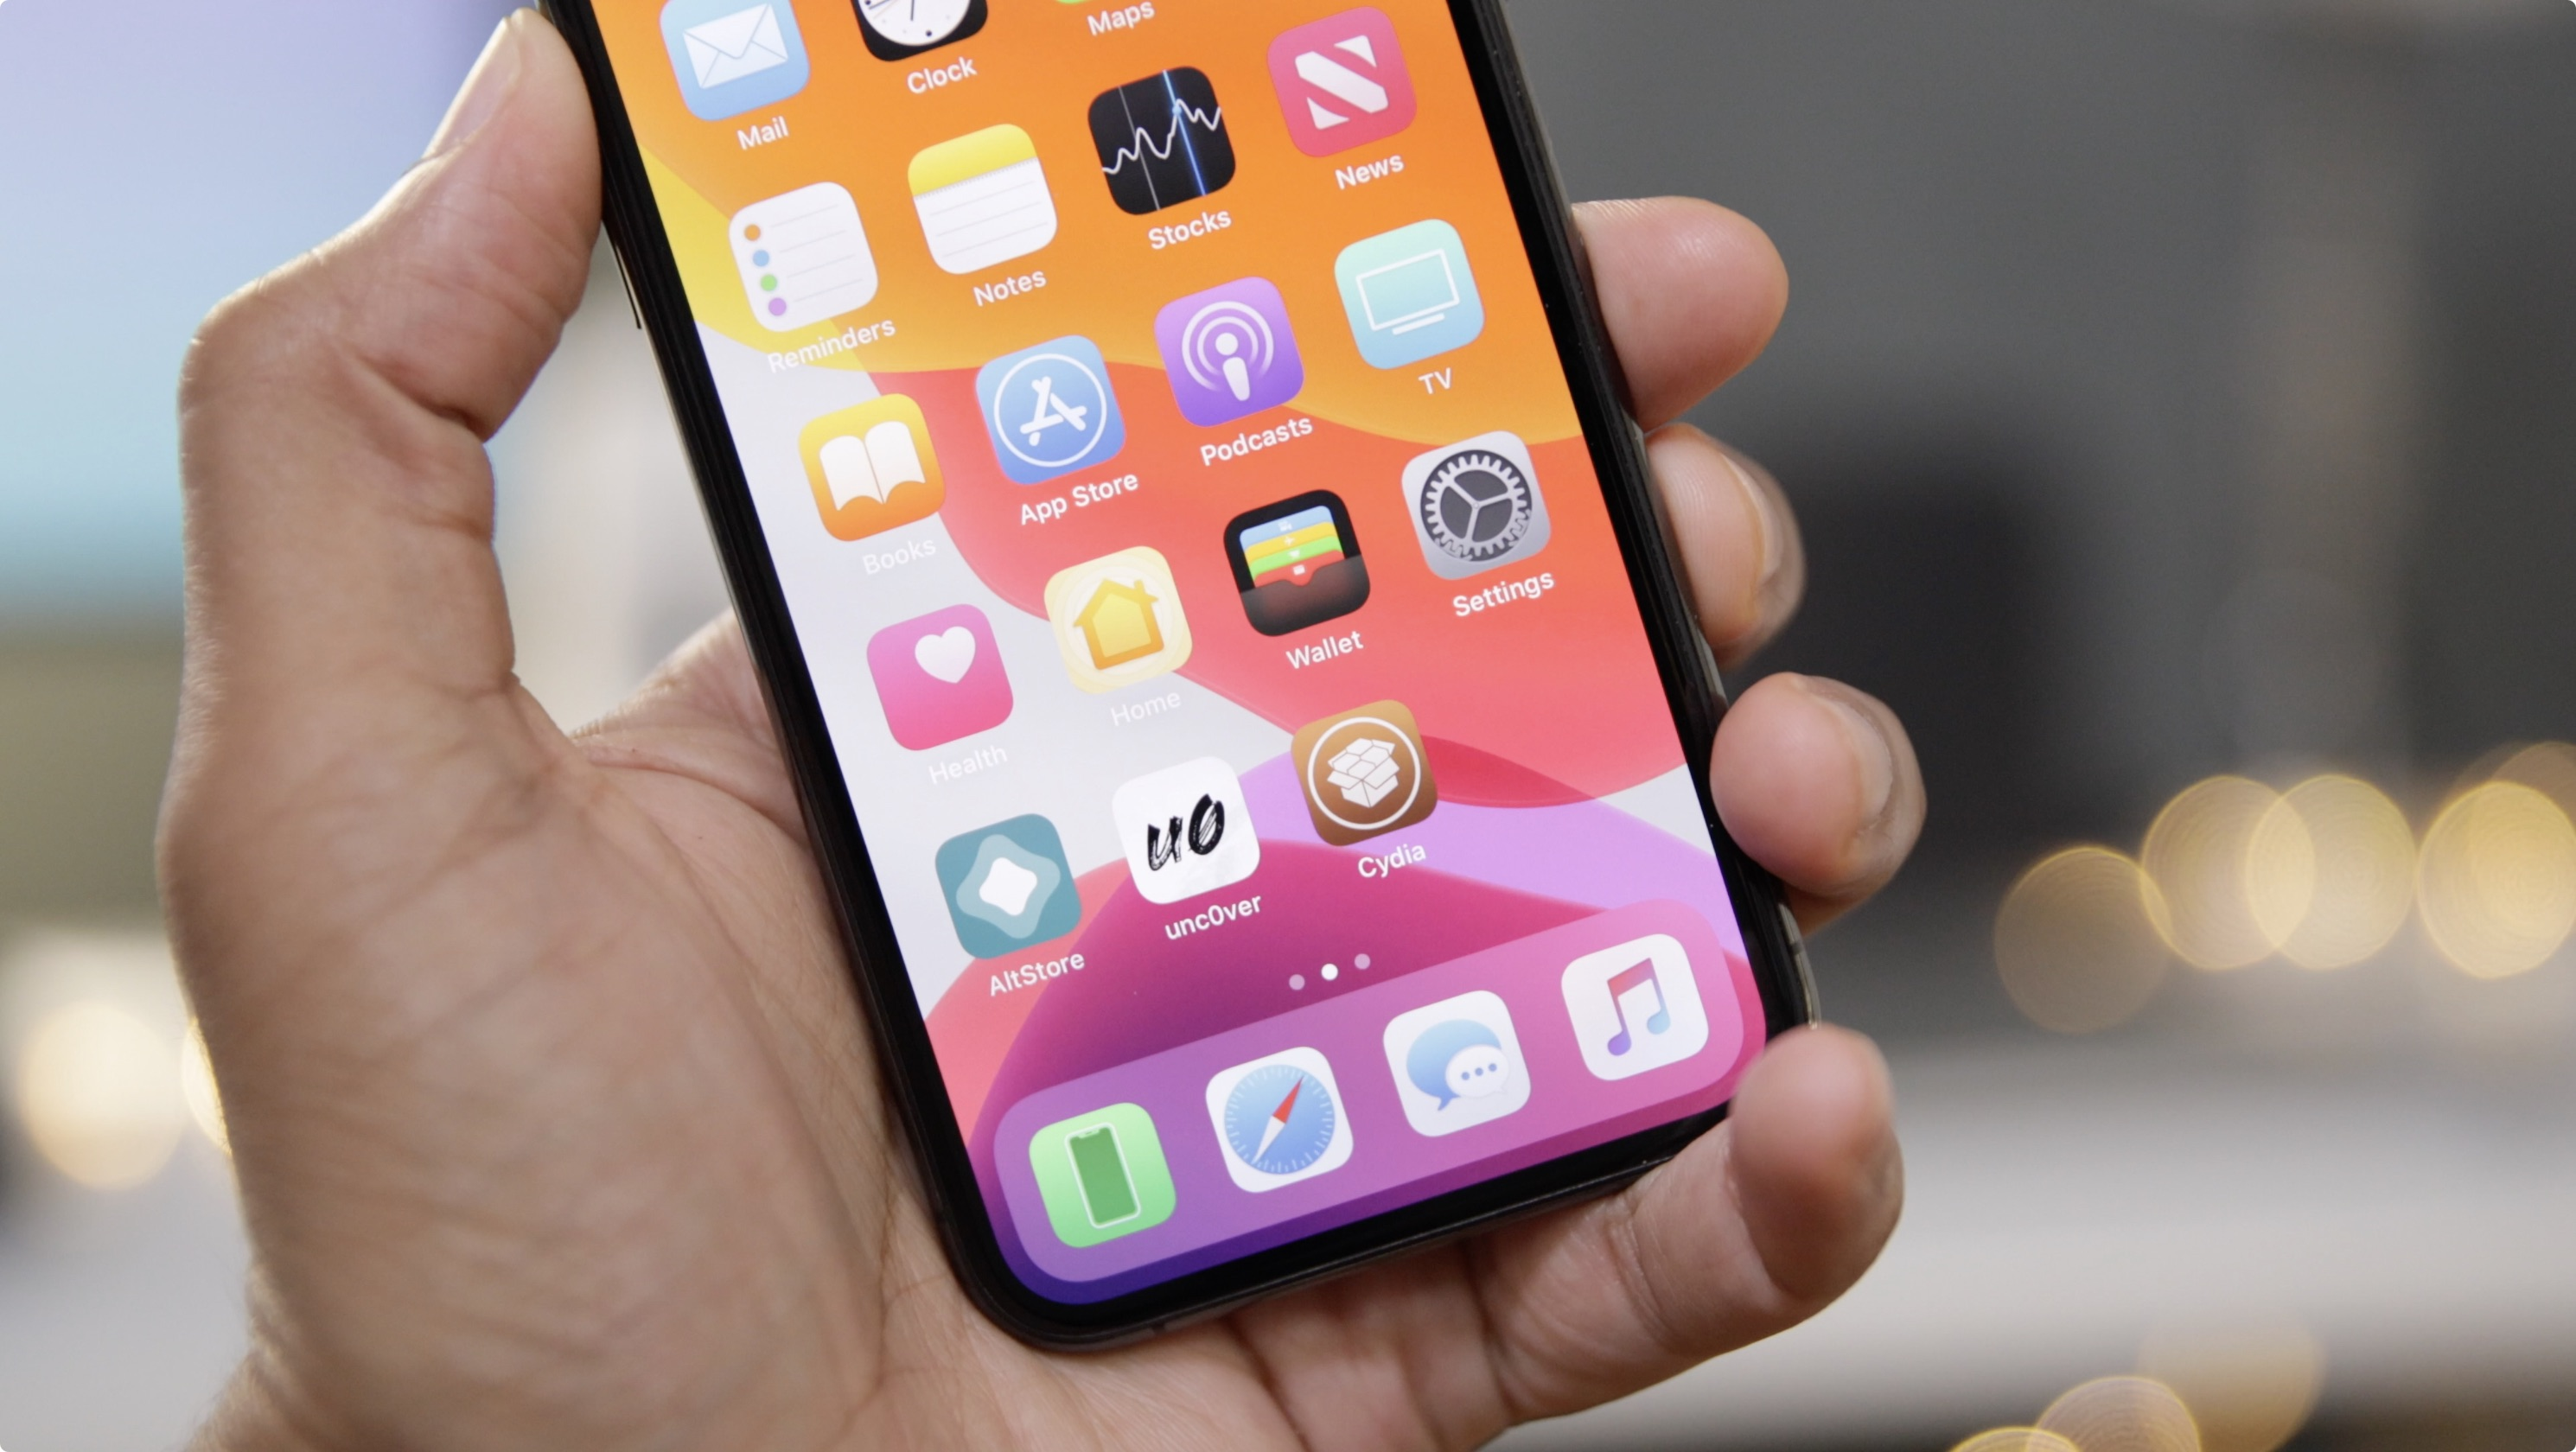 Apple Confirms Ios 13 5 1 Security Update Patches Vulnerability Breaking Unc0ver Jailbreak 9to5mac